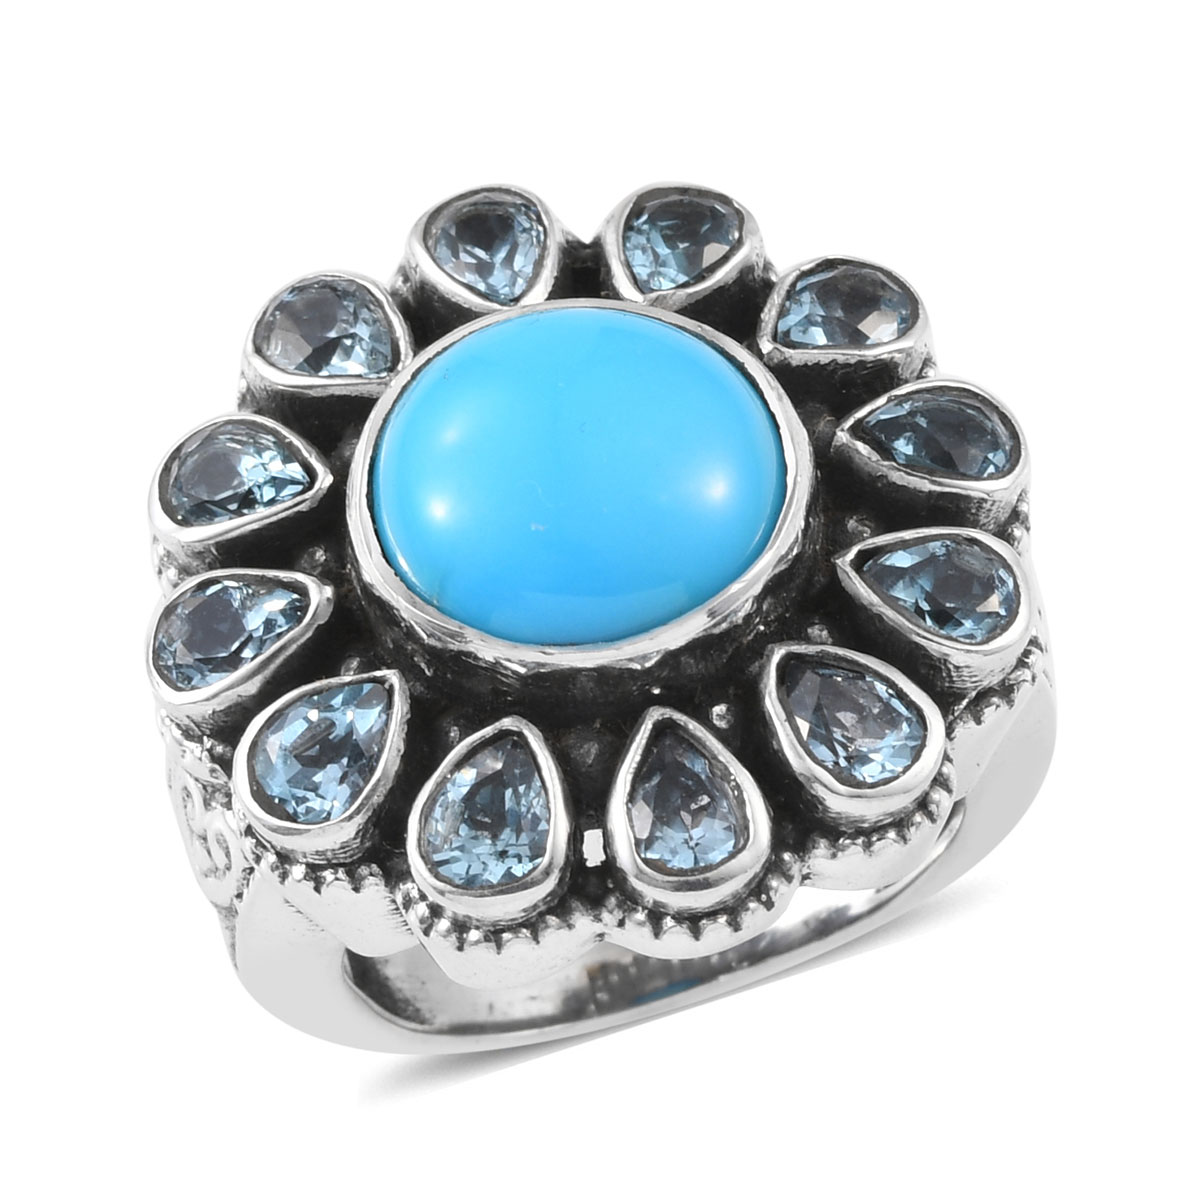 Artisan Crafted Arizona Sleeping Beauty Turquoise, Electric Blue Topaz Ring in Sterling Silver (Size 7.0) 5.19 ctw